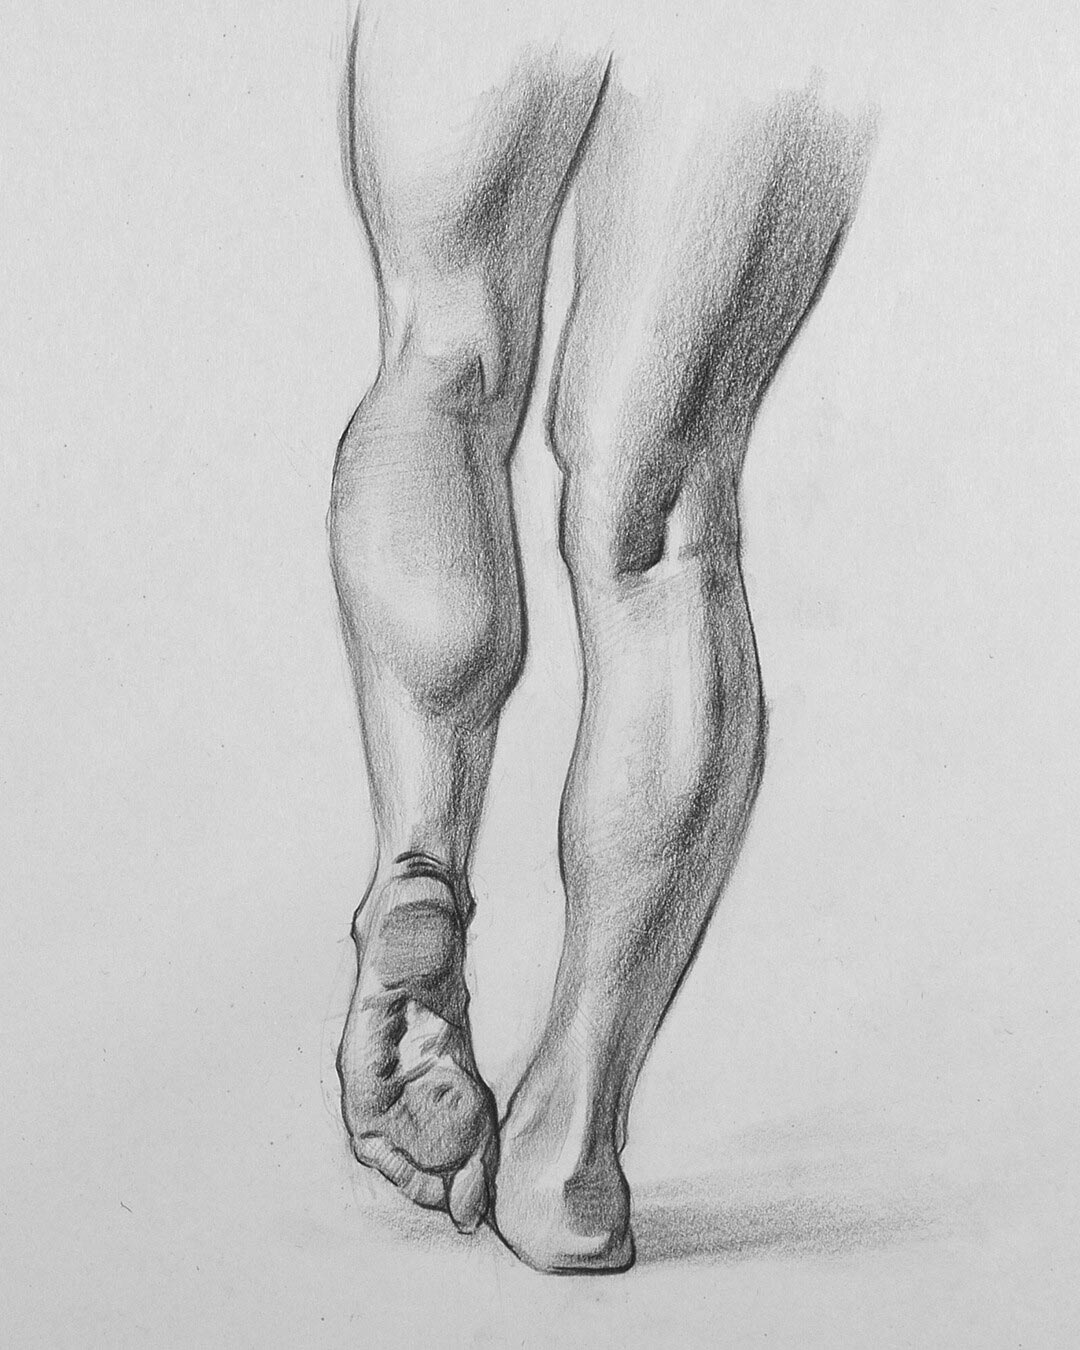 Calf muscle drawing reference